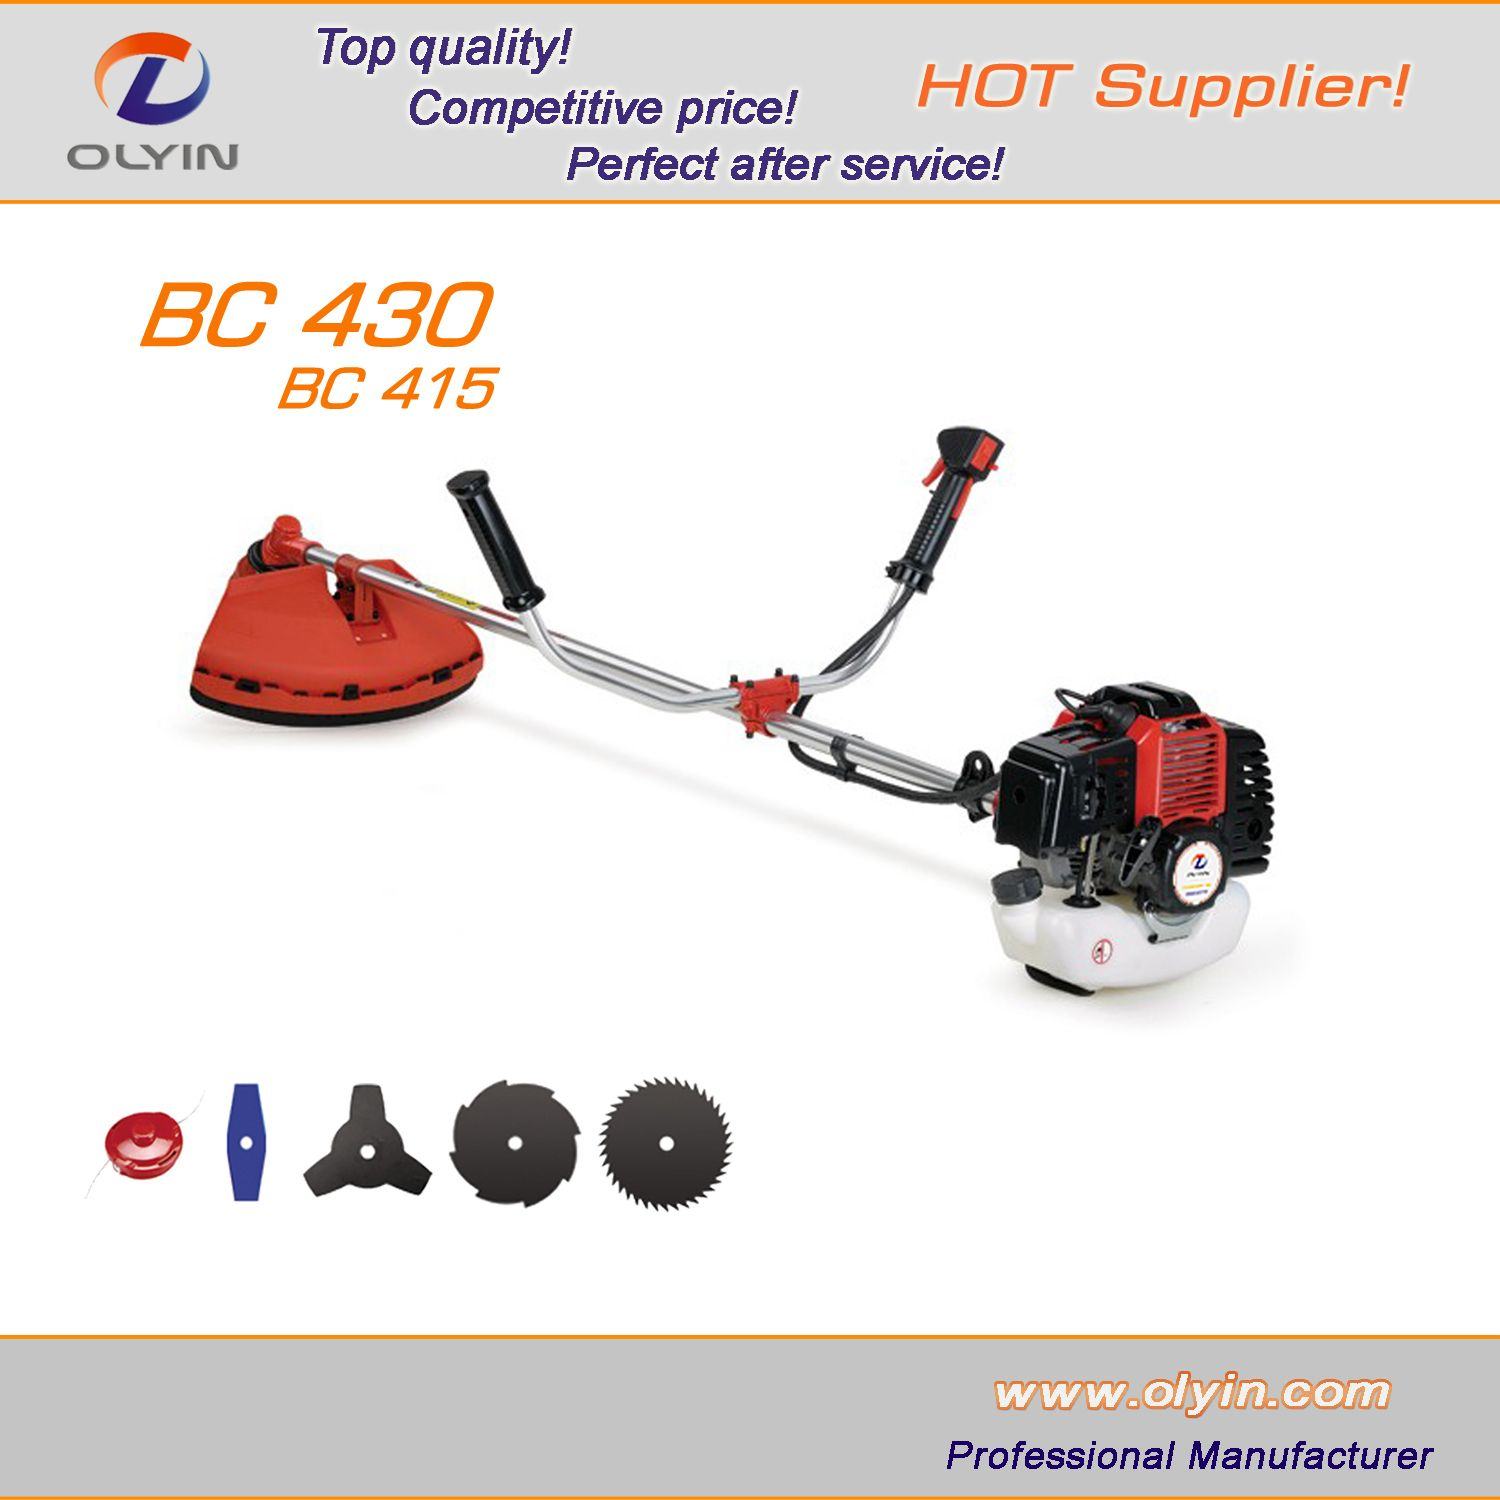 Grass Trimmer Loyal Garden Tools Lawn Mower Weed Brush Cutter Outdooor Trimmer Mower Parts Nylon Easy Load Professional Parts Easy Install Tools